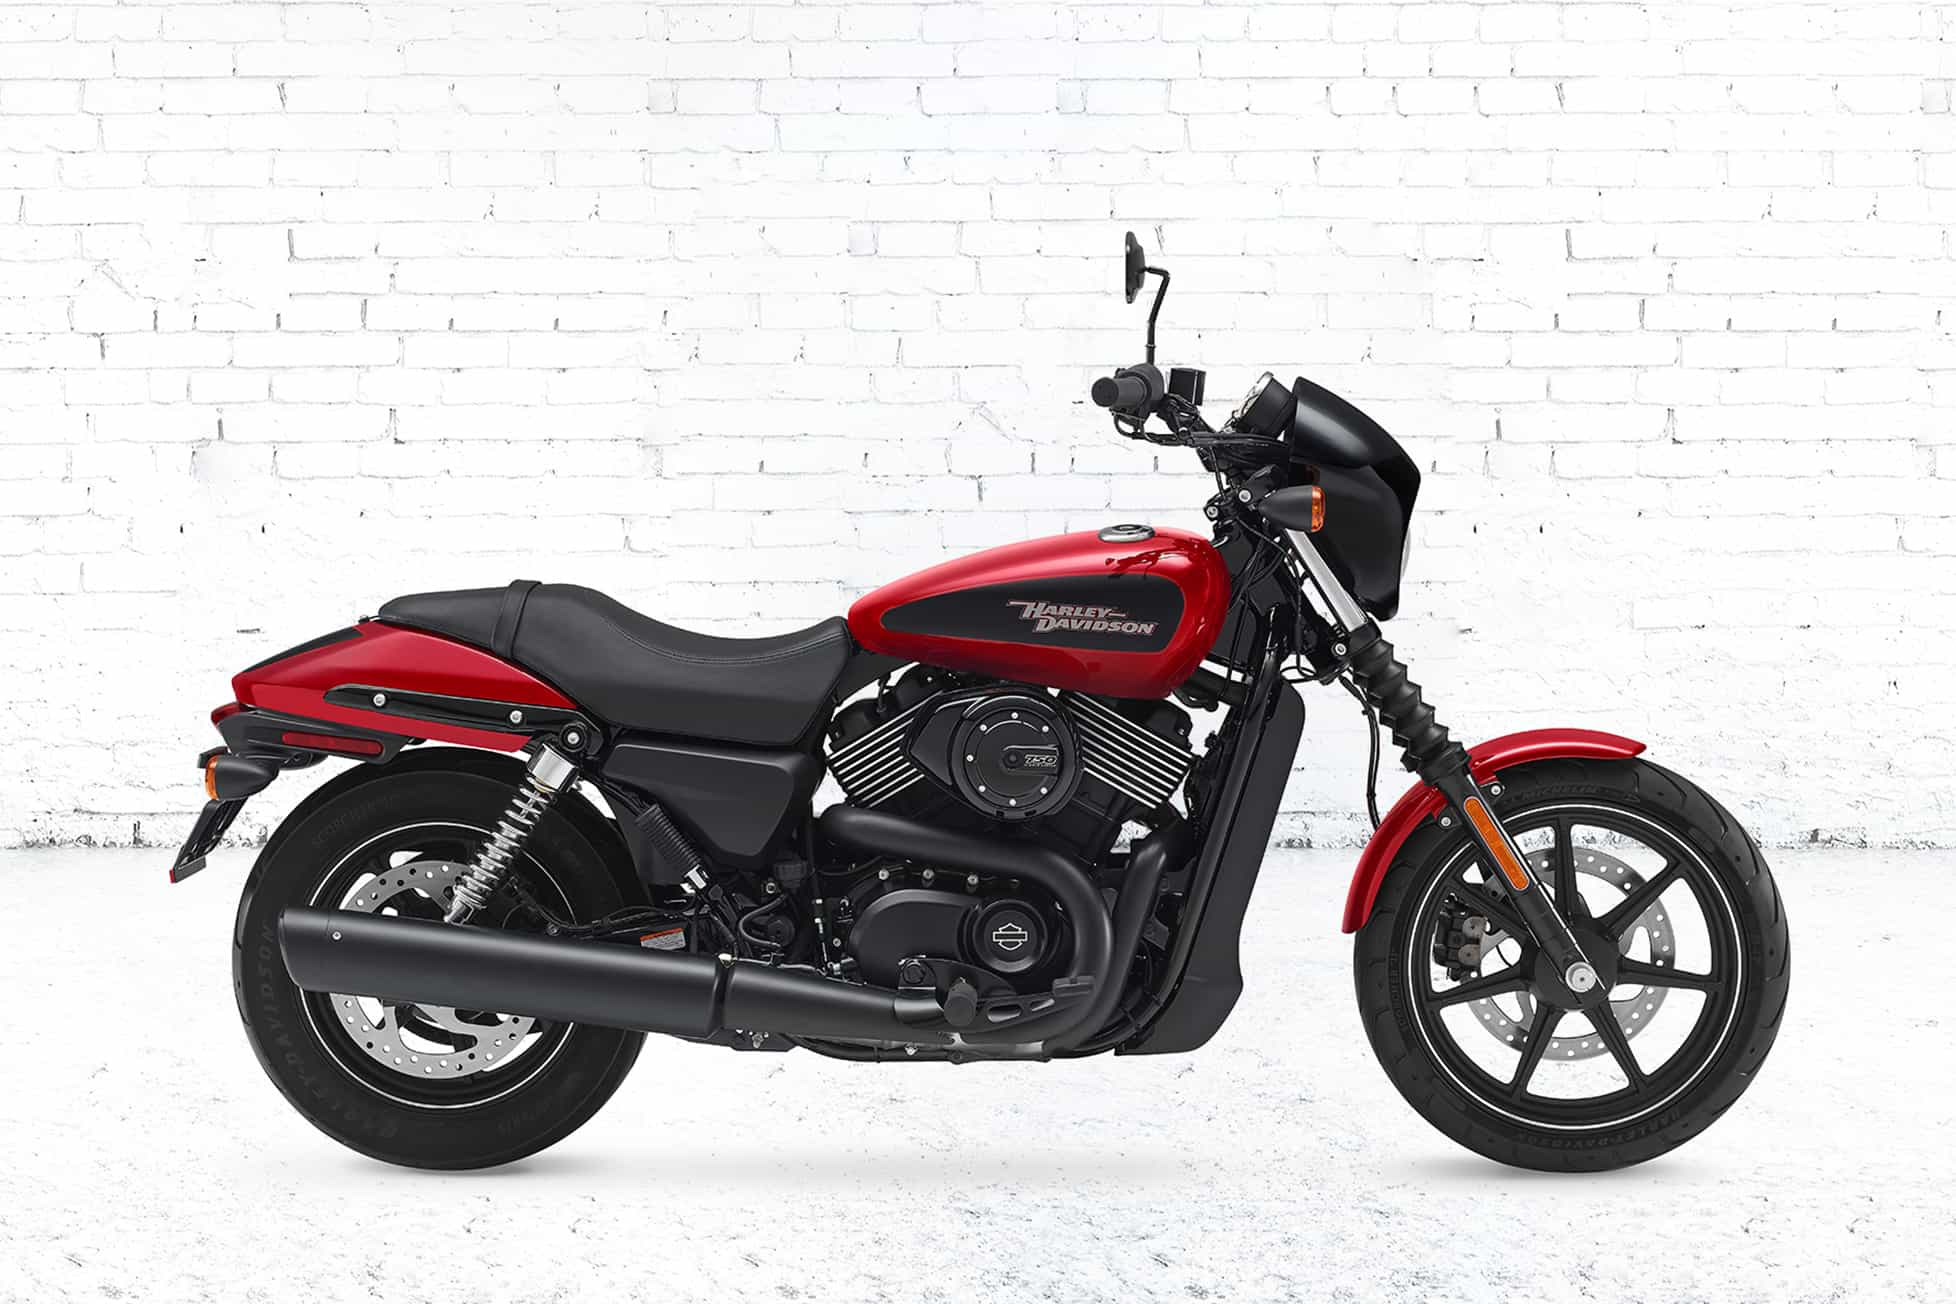 hight resolution of 2018 street 750 specs pricing harley davidson usa harley davidson v twin fuel injected engine diagrams